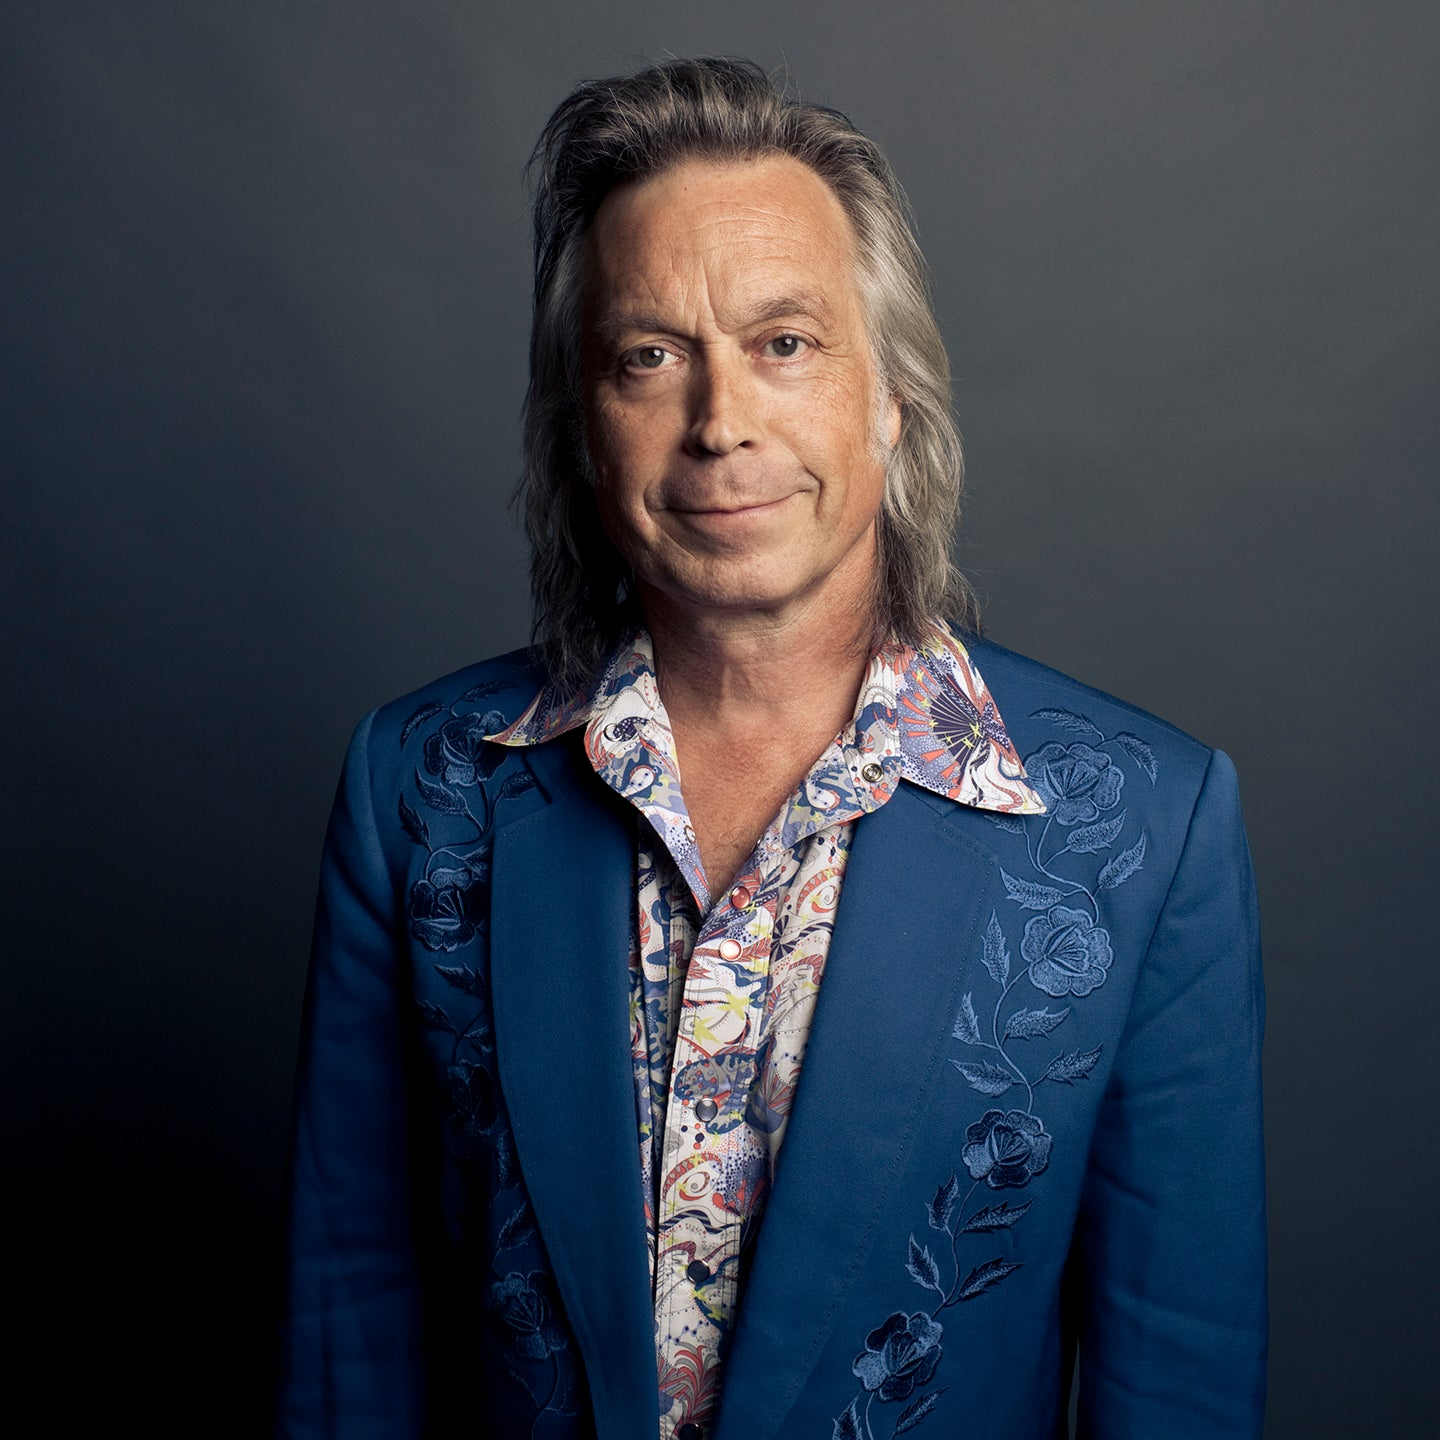 An Evening with Jim Lauderdale